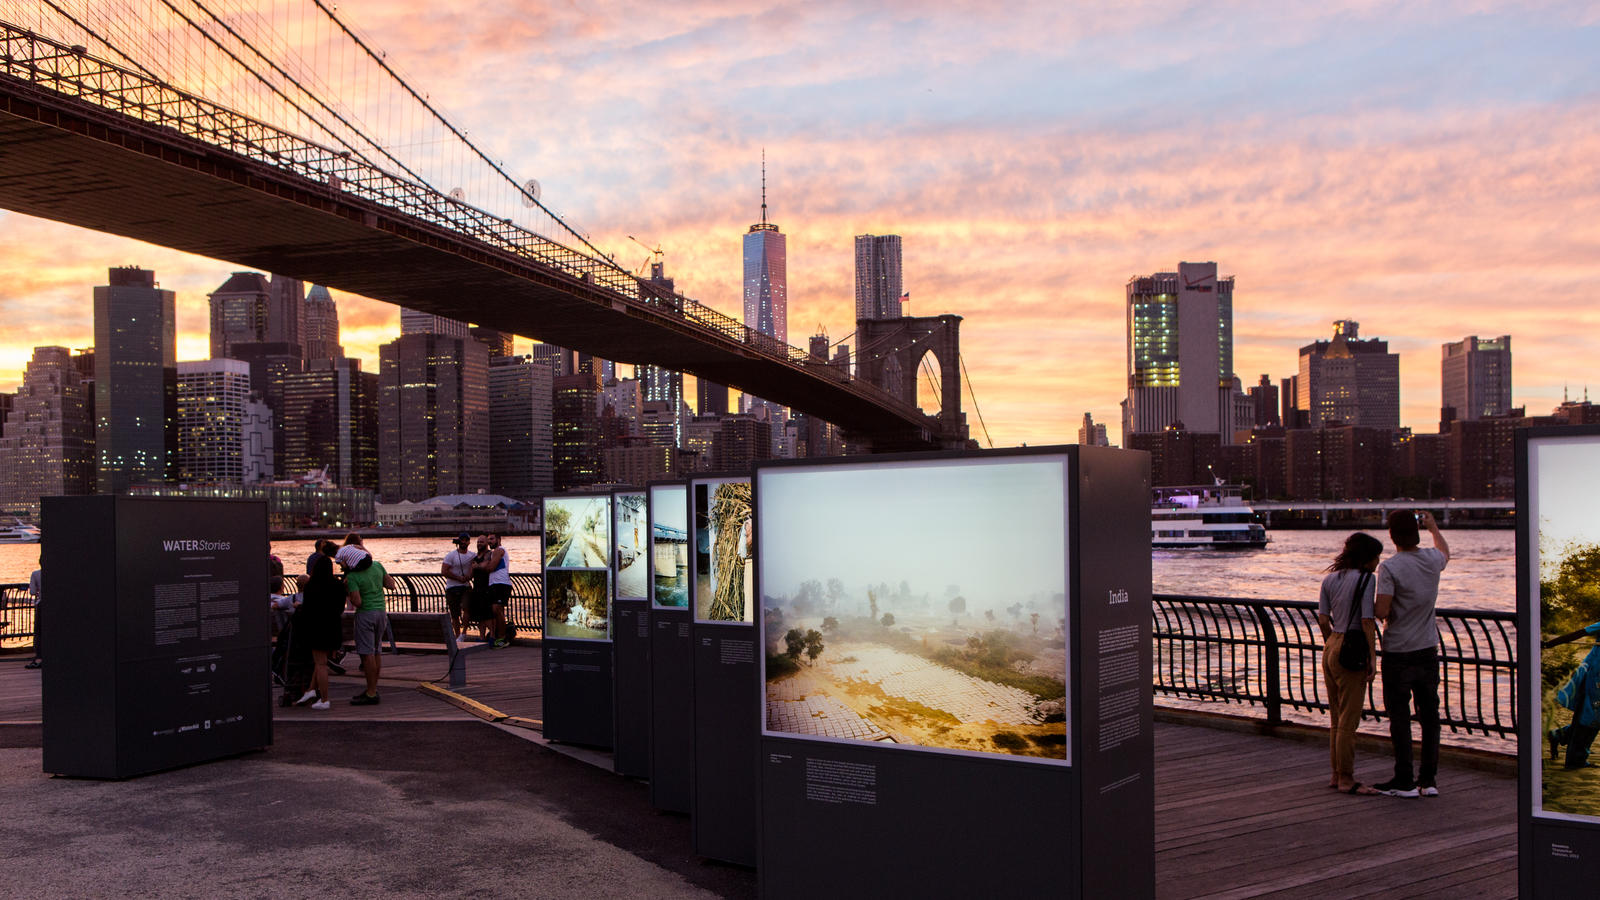 Water Stories exhibition in Brooklyn Bridge Park, New York.